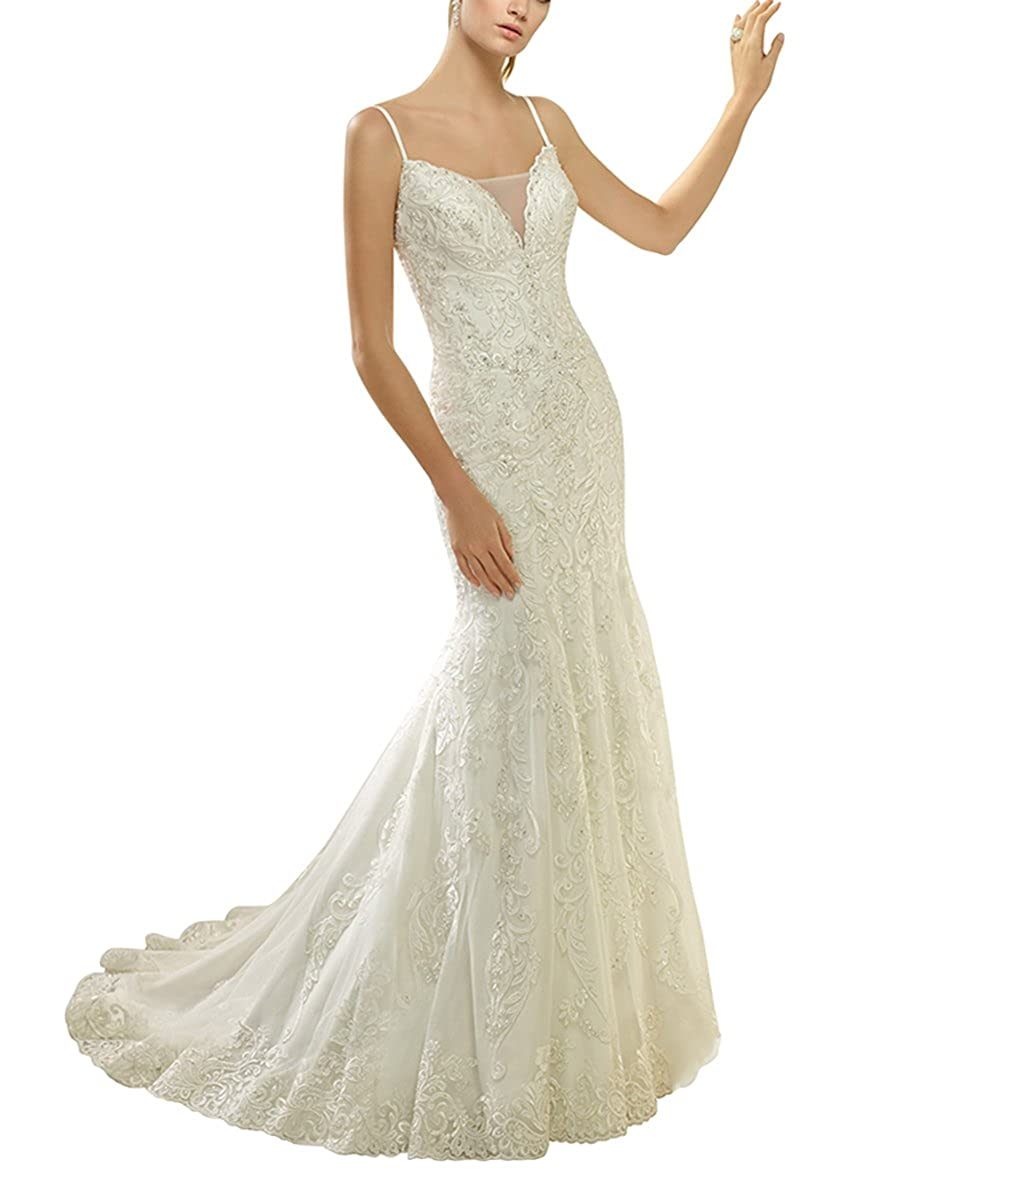 Newdeve White Strap Lace Wedding Dresses Slim Fit Mermaid Backless